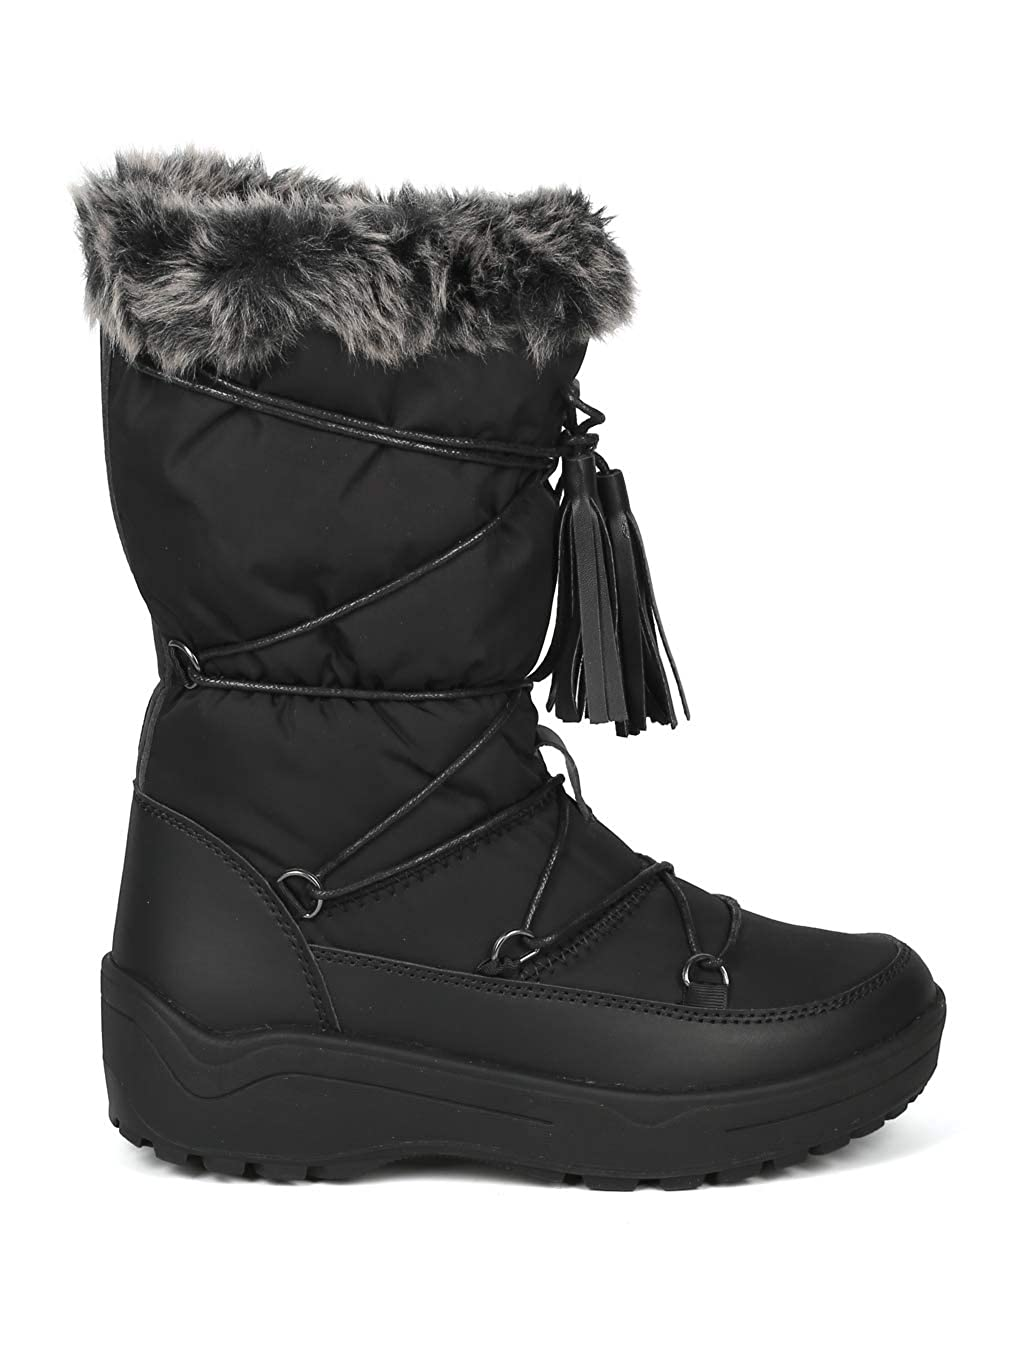 IB52 Alrisco Women Mixed Media Mid-Calf Gilly Tie Lace Up Fur Cuff Winter Boot